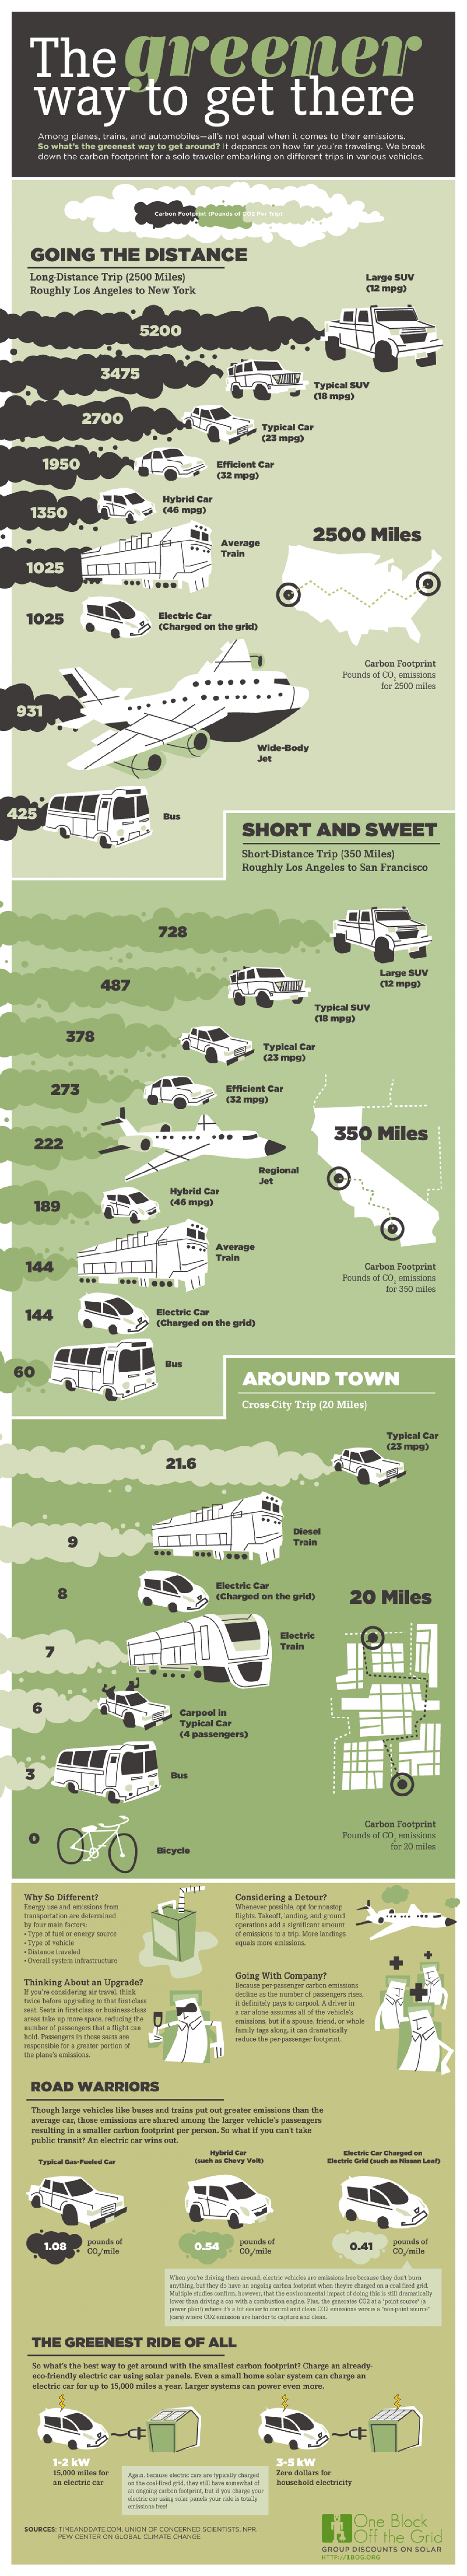 The Greener Way To Get There Infographic